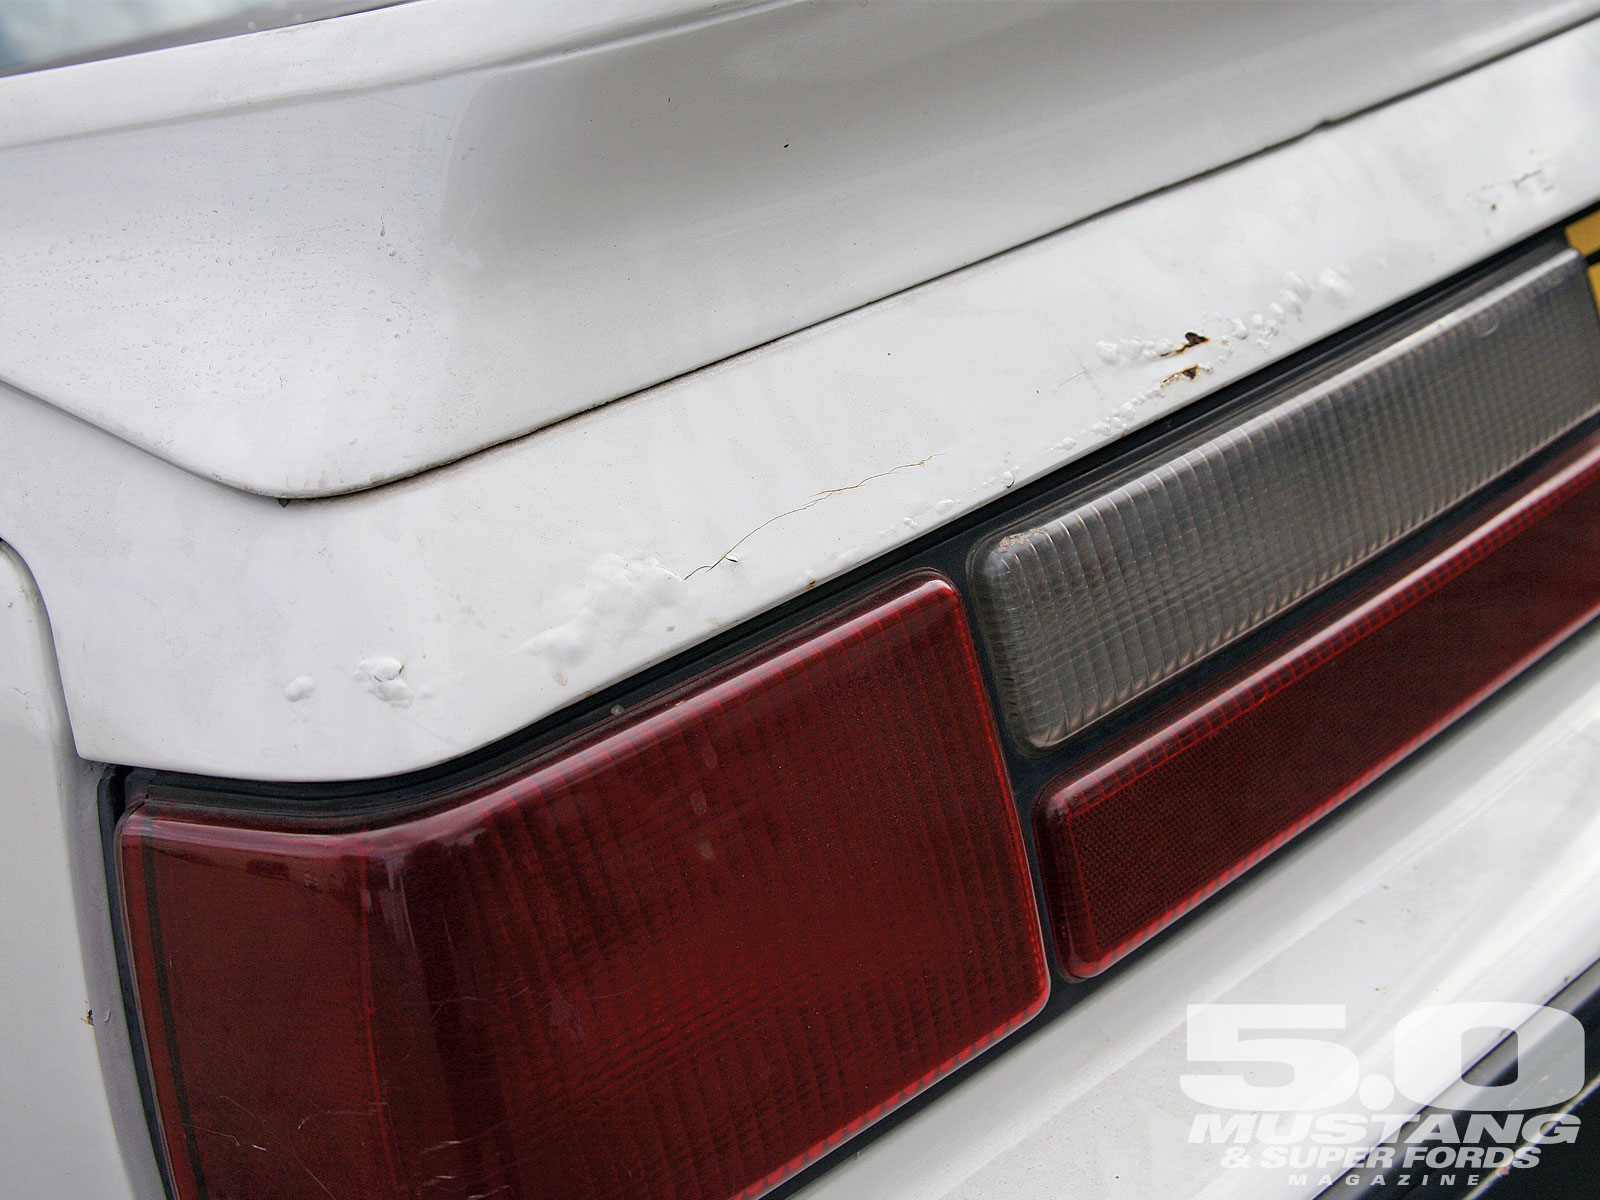 M5lp_1008_03_o 1988_ford_mustang_lx Detail_shots